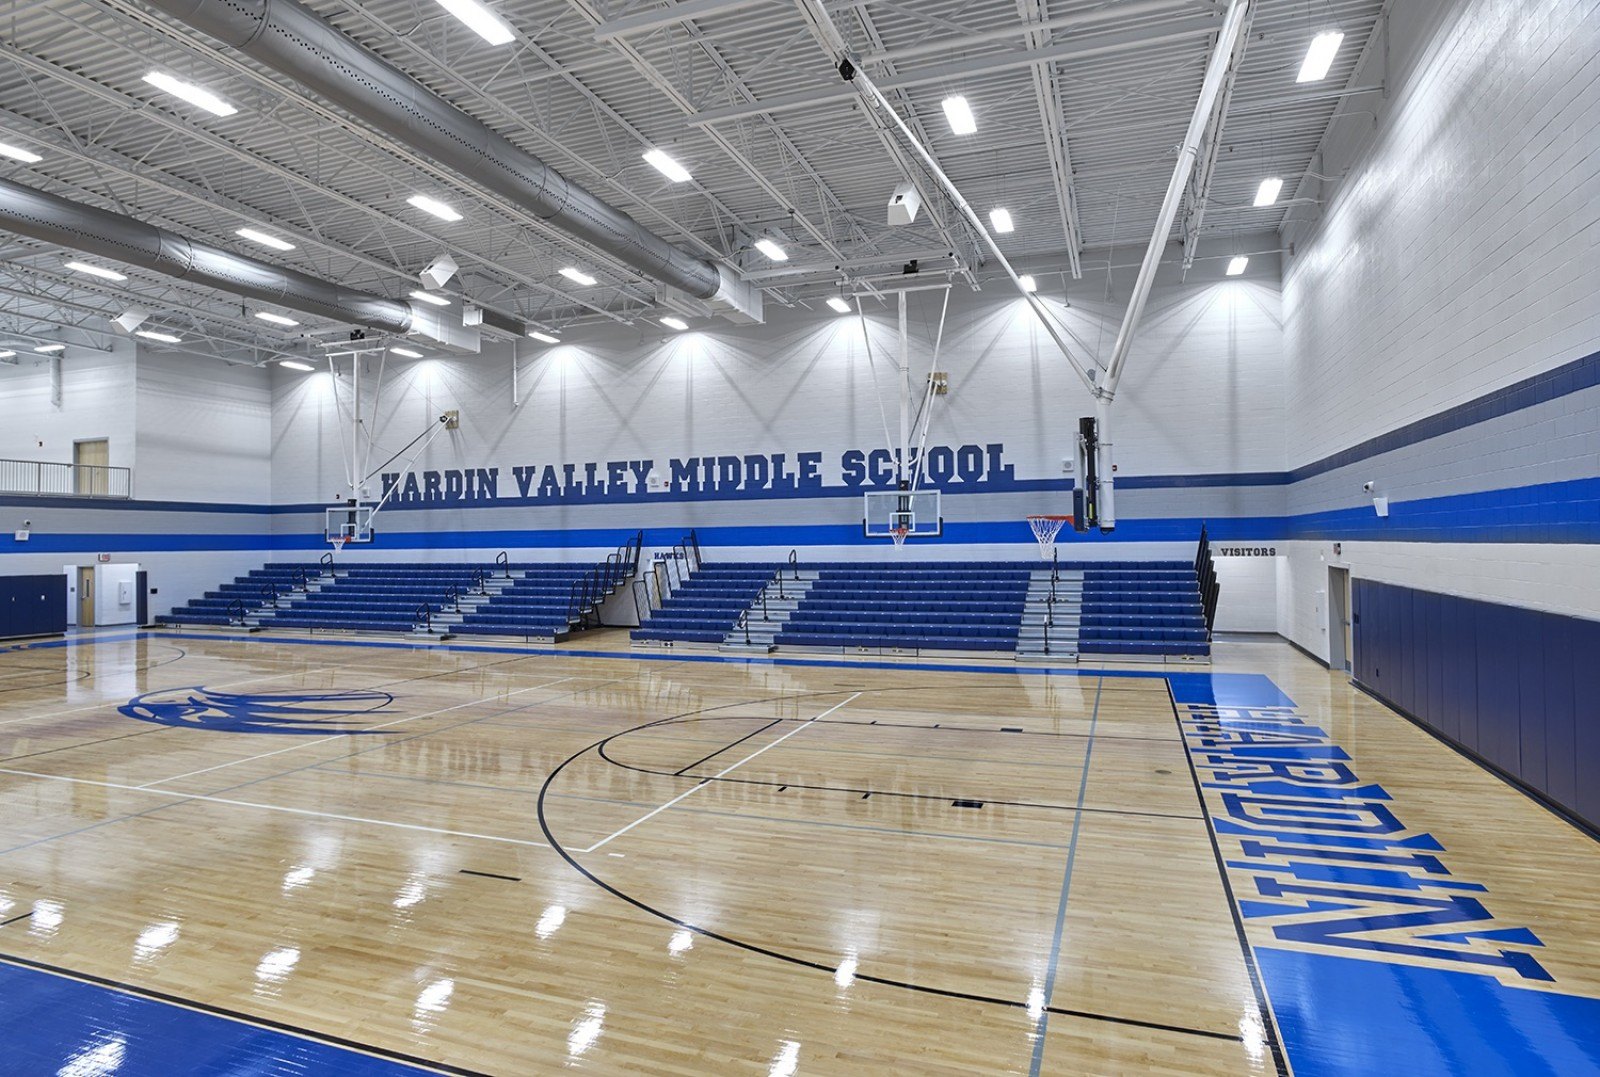 Hardin Valley Middle School - Gym